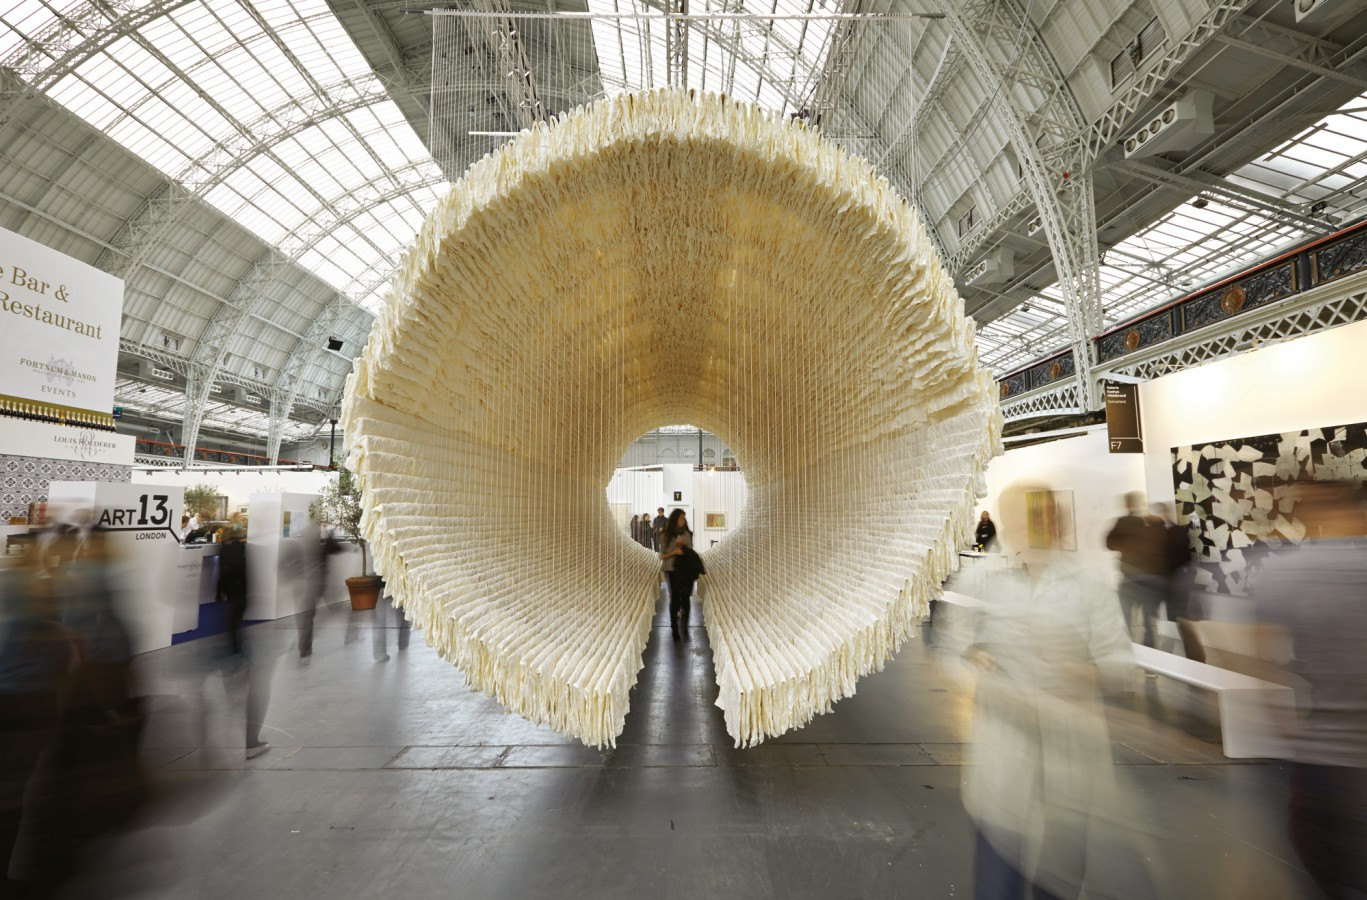 An installation at last year's show. Source: Art14.